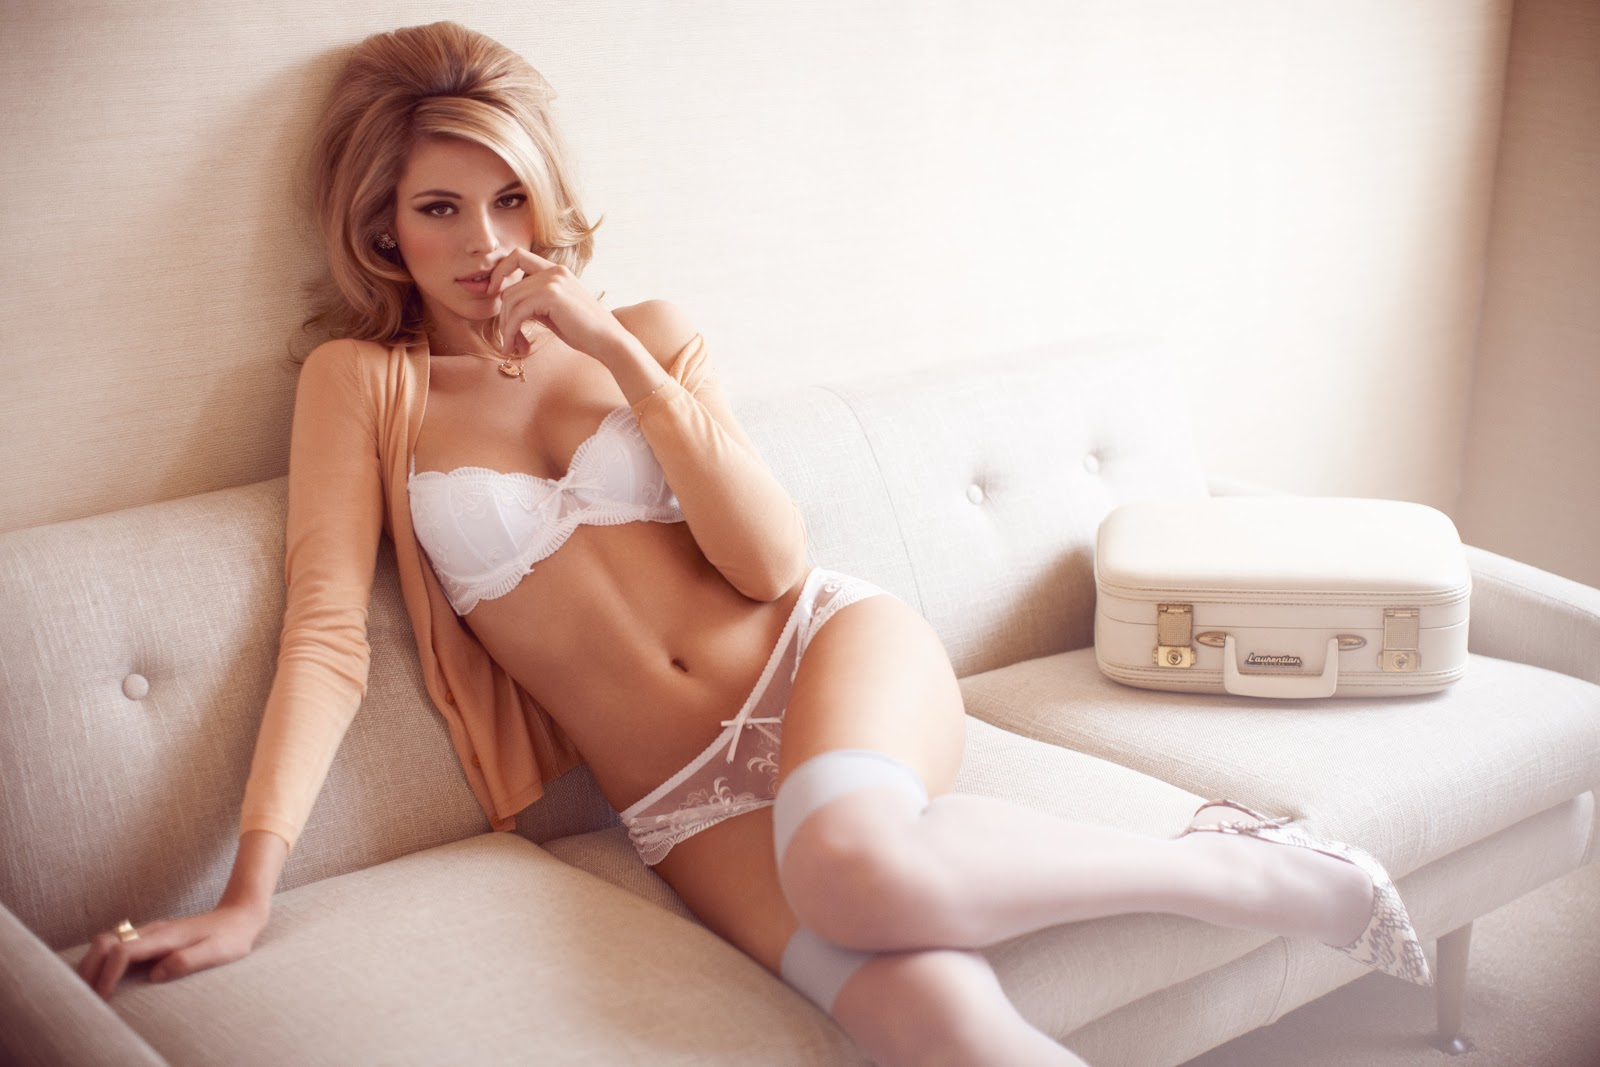 where to buy aesthetic appearance available Buy Super-sexy Wedding Night Lingerie Online to Look Hot ...